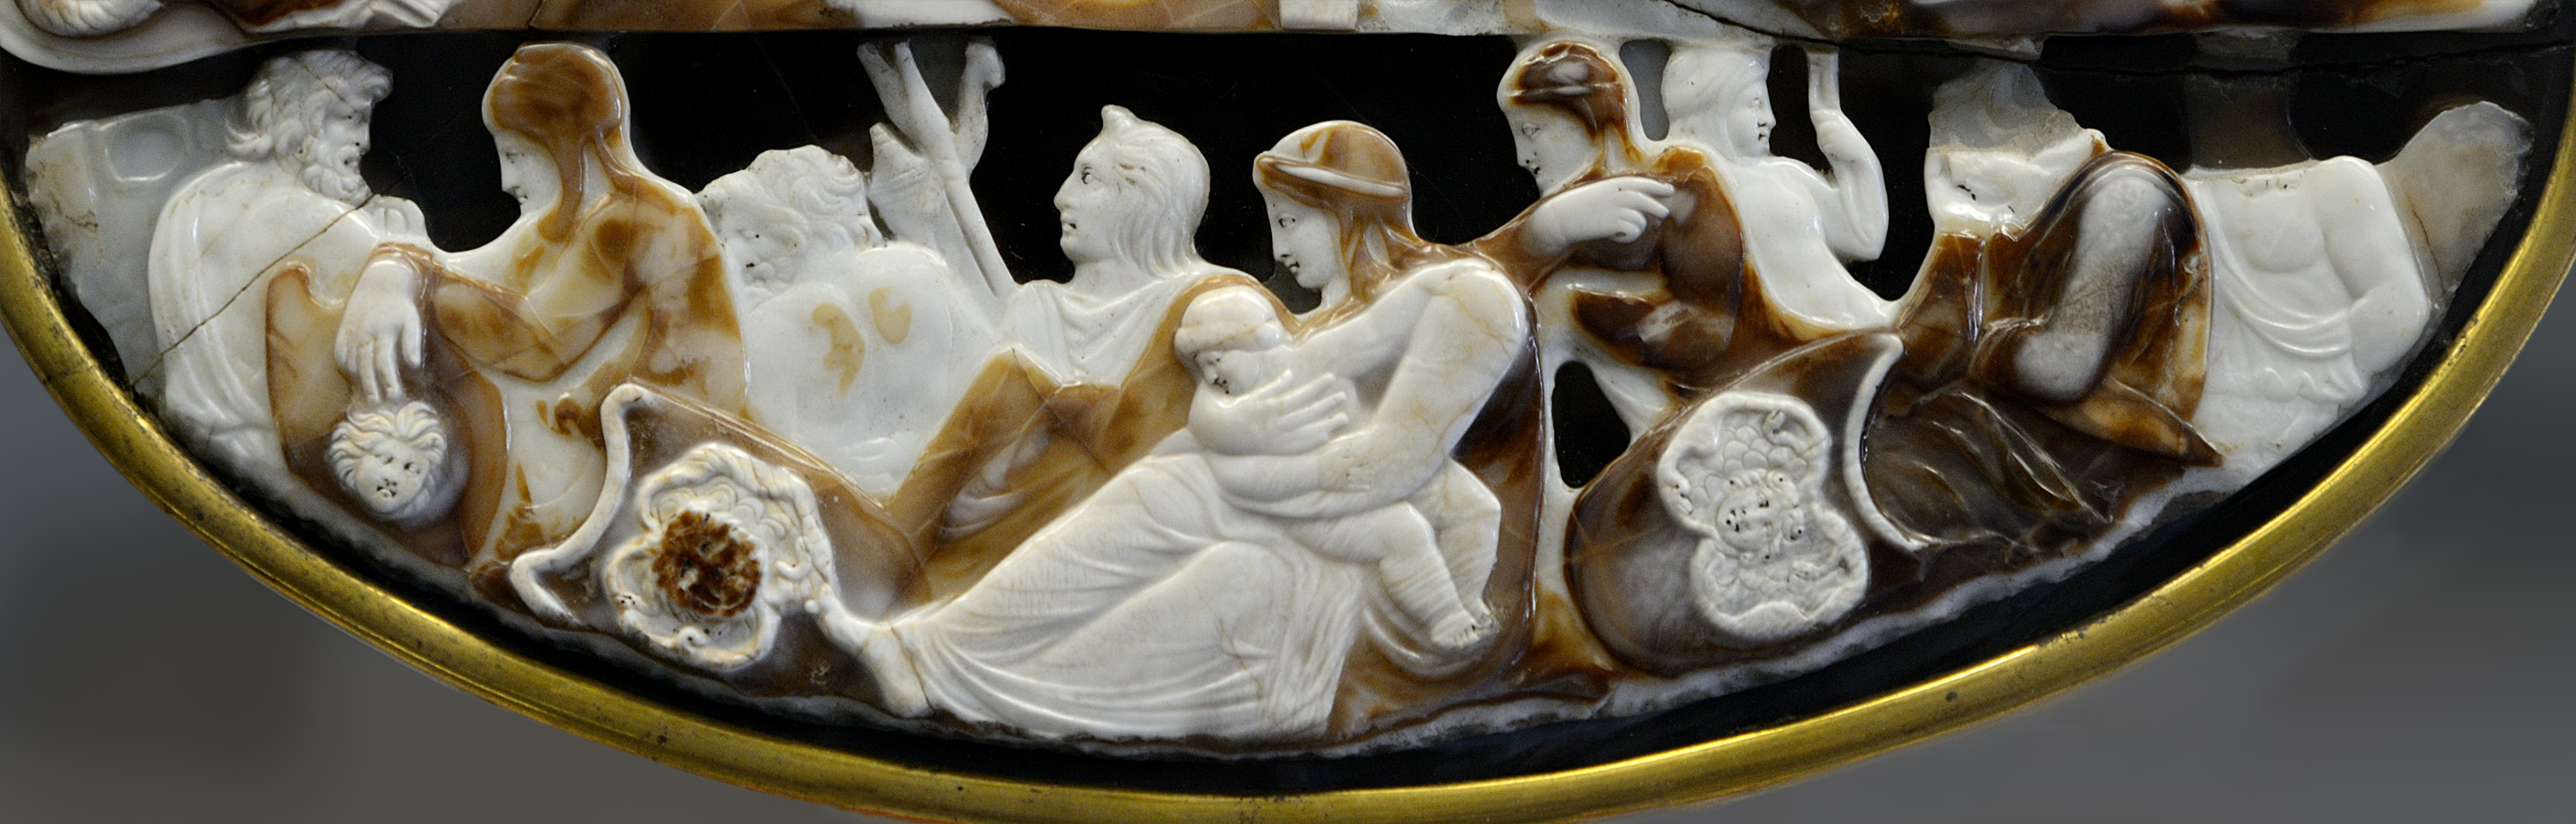 """Cameo of Tiberius"" (so-called ""Great Cameo of France""). The lower register. Five-layered sardonyx. Ca. 23 CE. Inv. No. Camee. 264. Paris, National Library, Cabinet des Médailles"